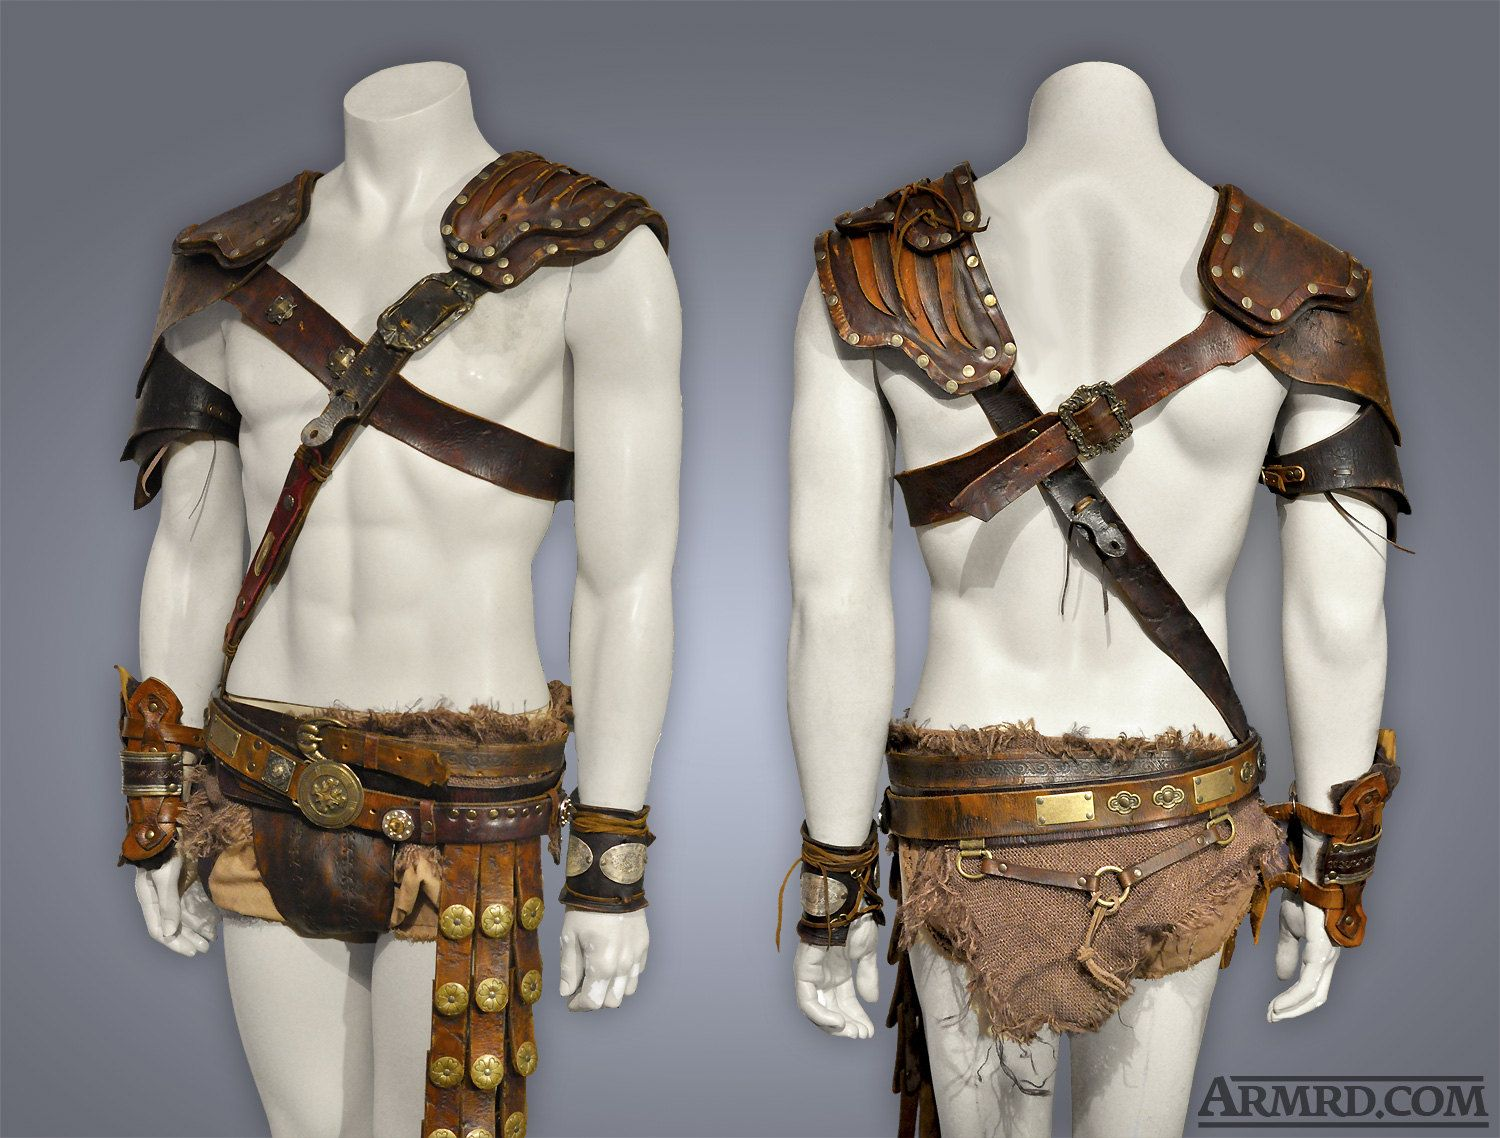 Crixus Gladiator Costume Leather Armour by Armrd on Etsy & Crixus Gladiator Costume Leather Armour by Armrd on Etsy | Costumes ...